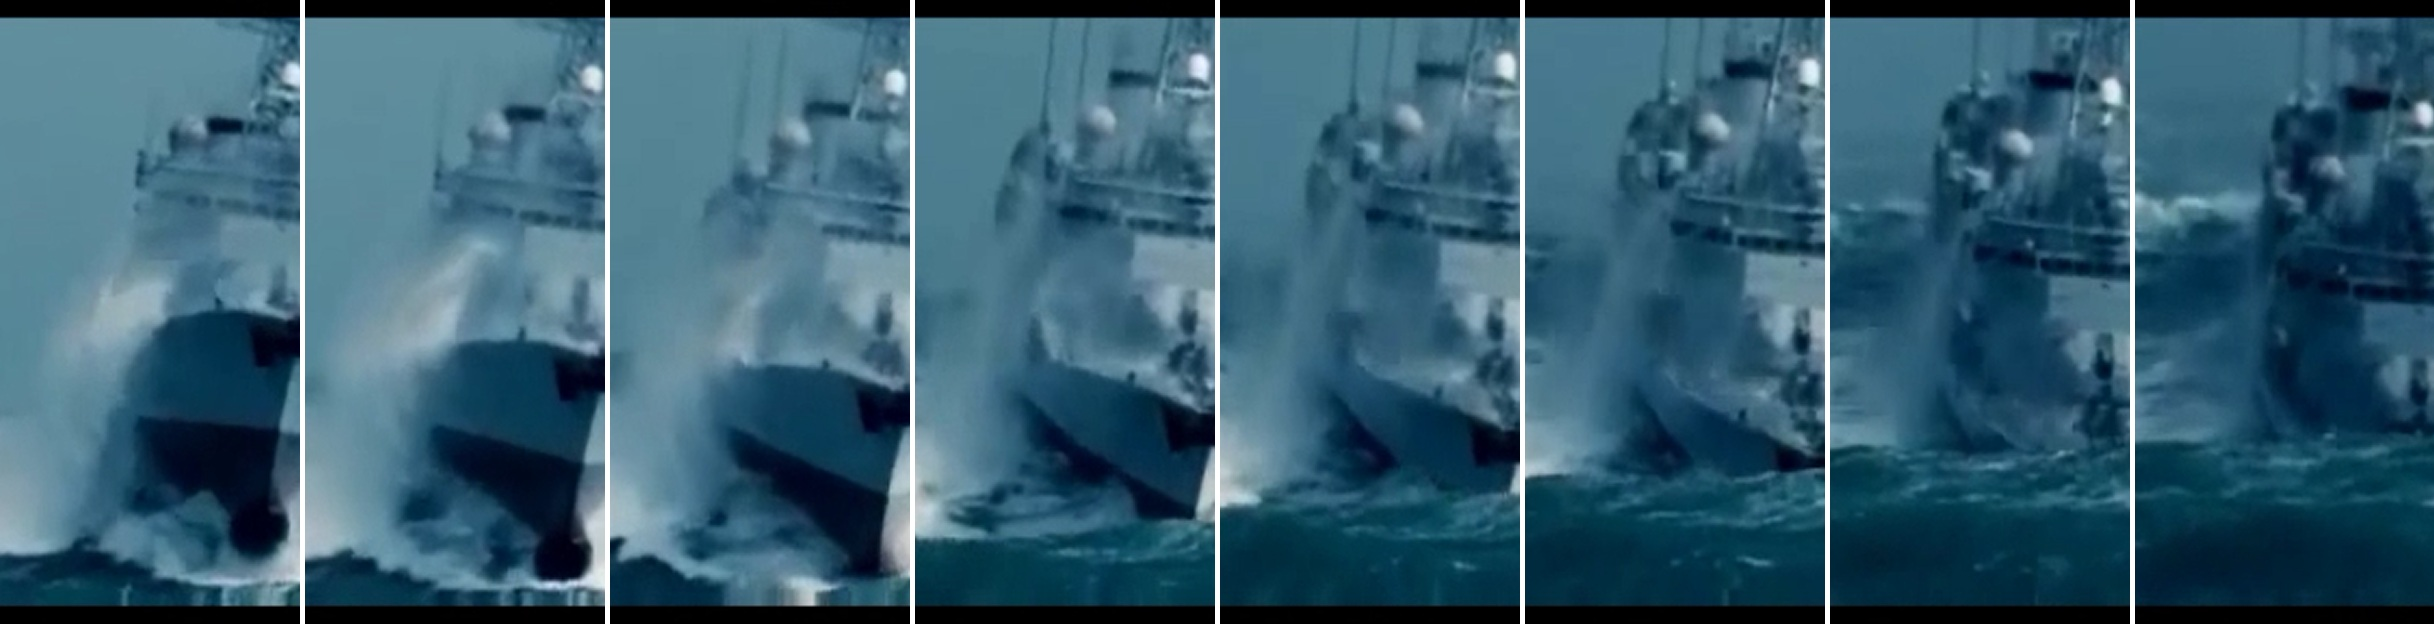 Yaw in the hull of a destroyer seen from the bow, generated from lateral forces produced by vertical movement of the sonar dome in the water